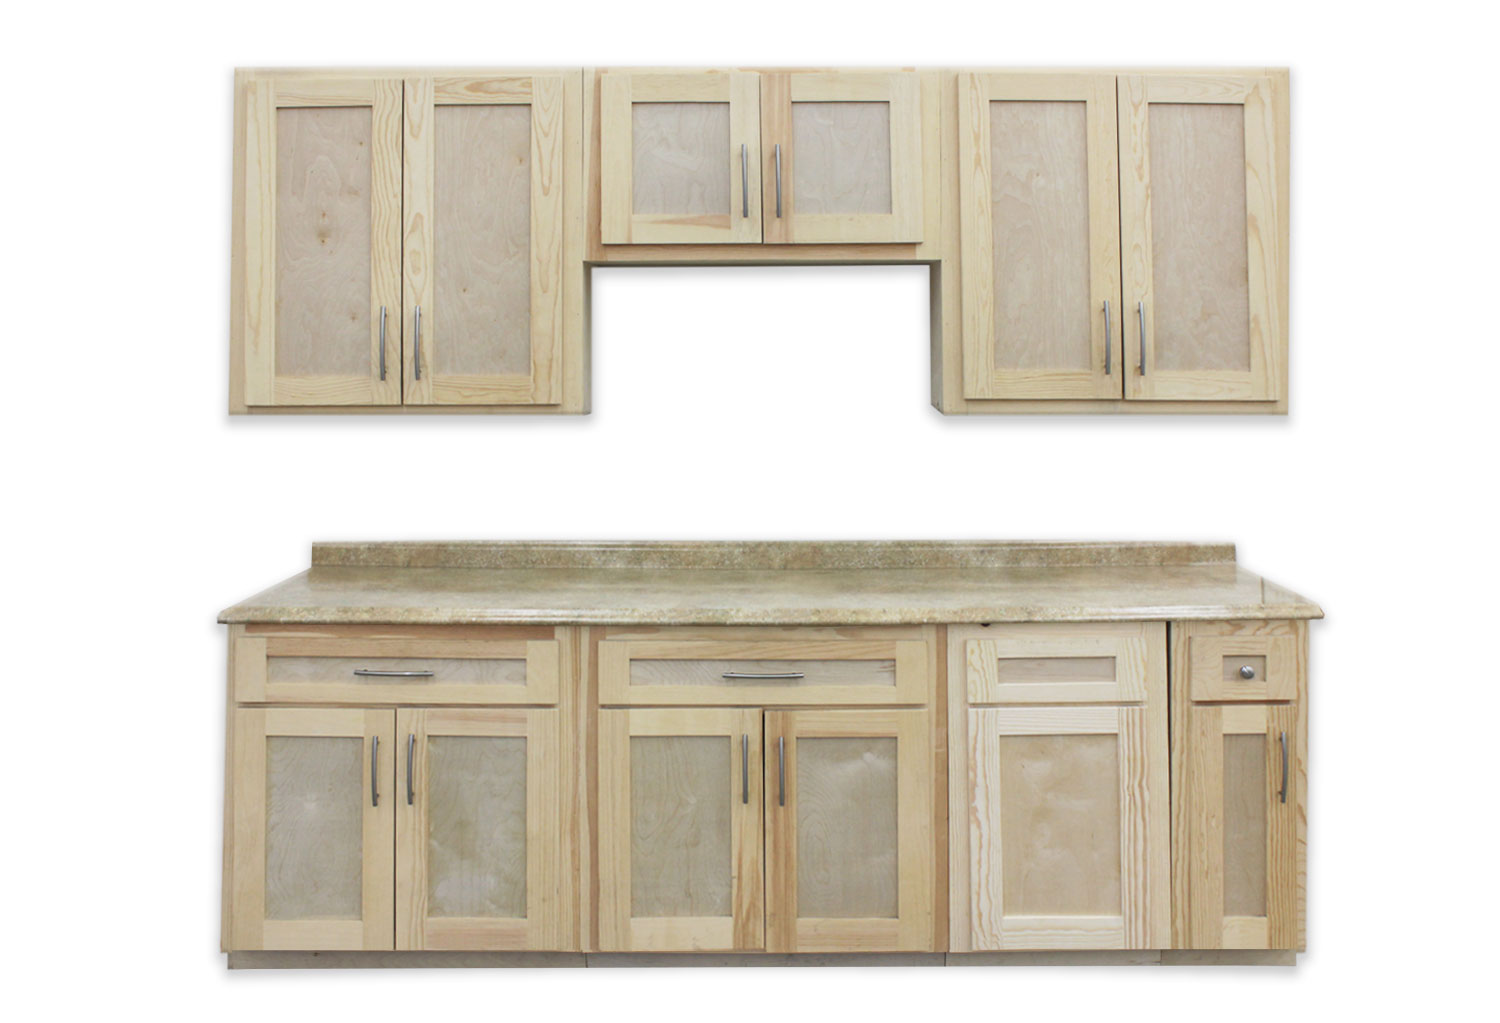 unfinished_shaker_pine_kitchen_cabinets.jpg